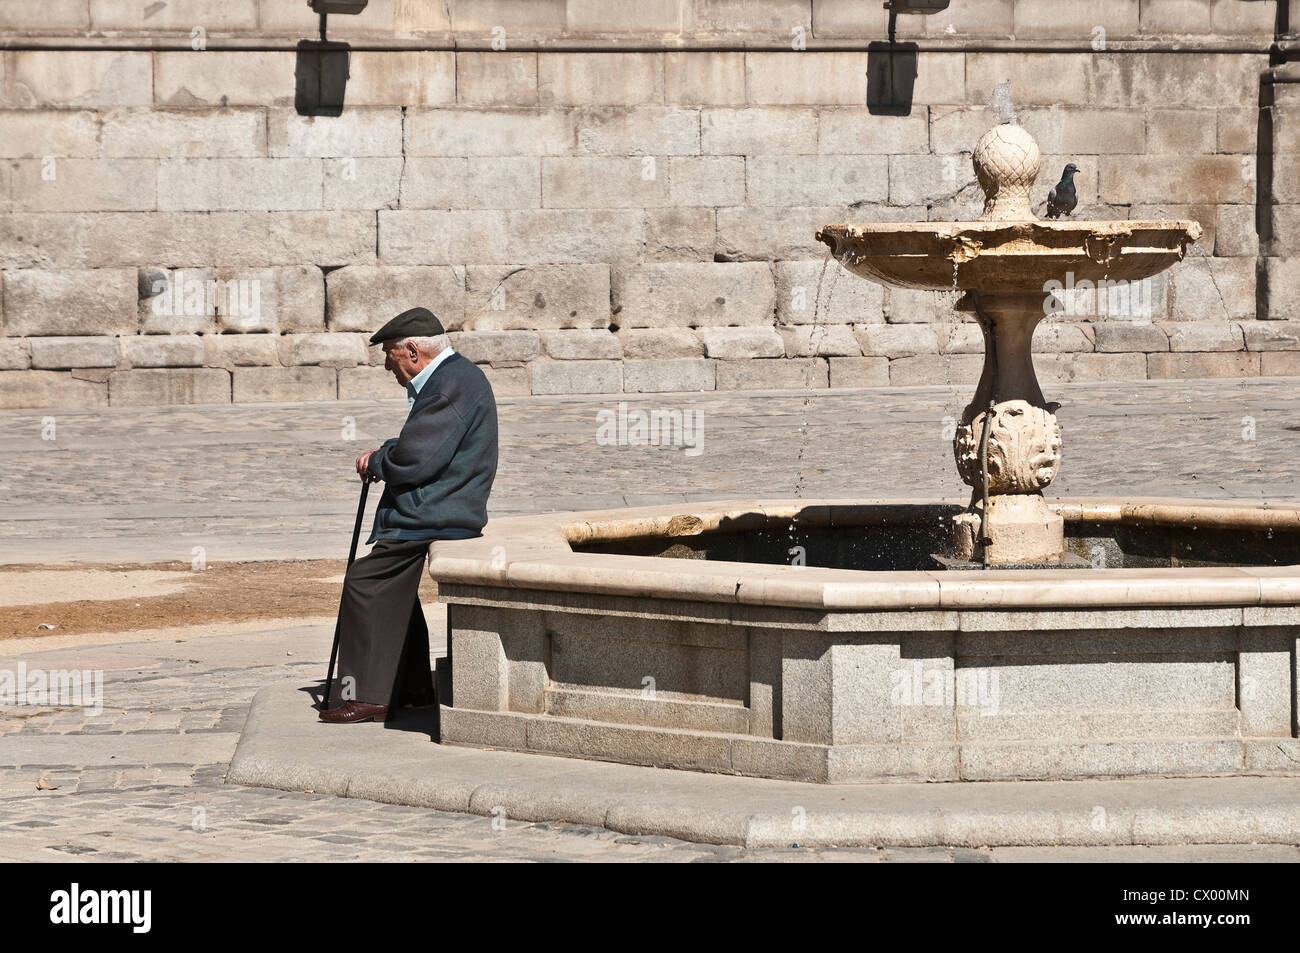 Early morning in the Plaza Conde Barajas, Hapsburg Madrid or Madrid de los Austrias, central Madrid, Spain. - Stock Image